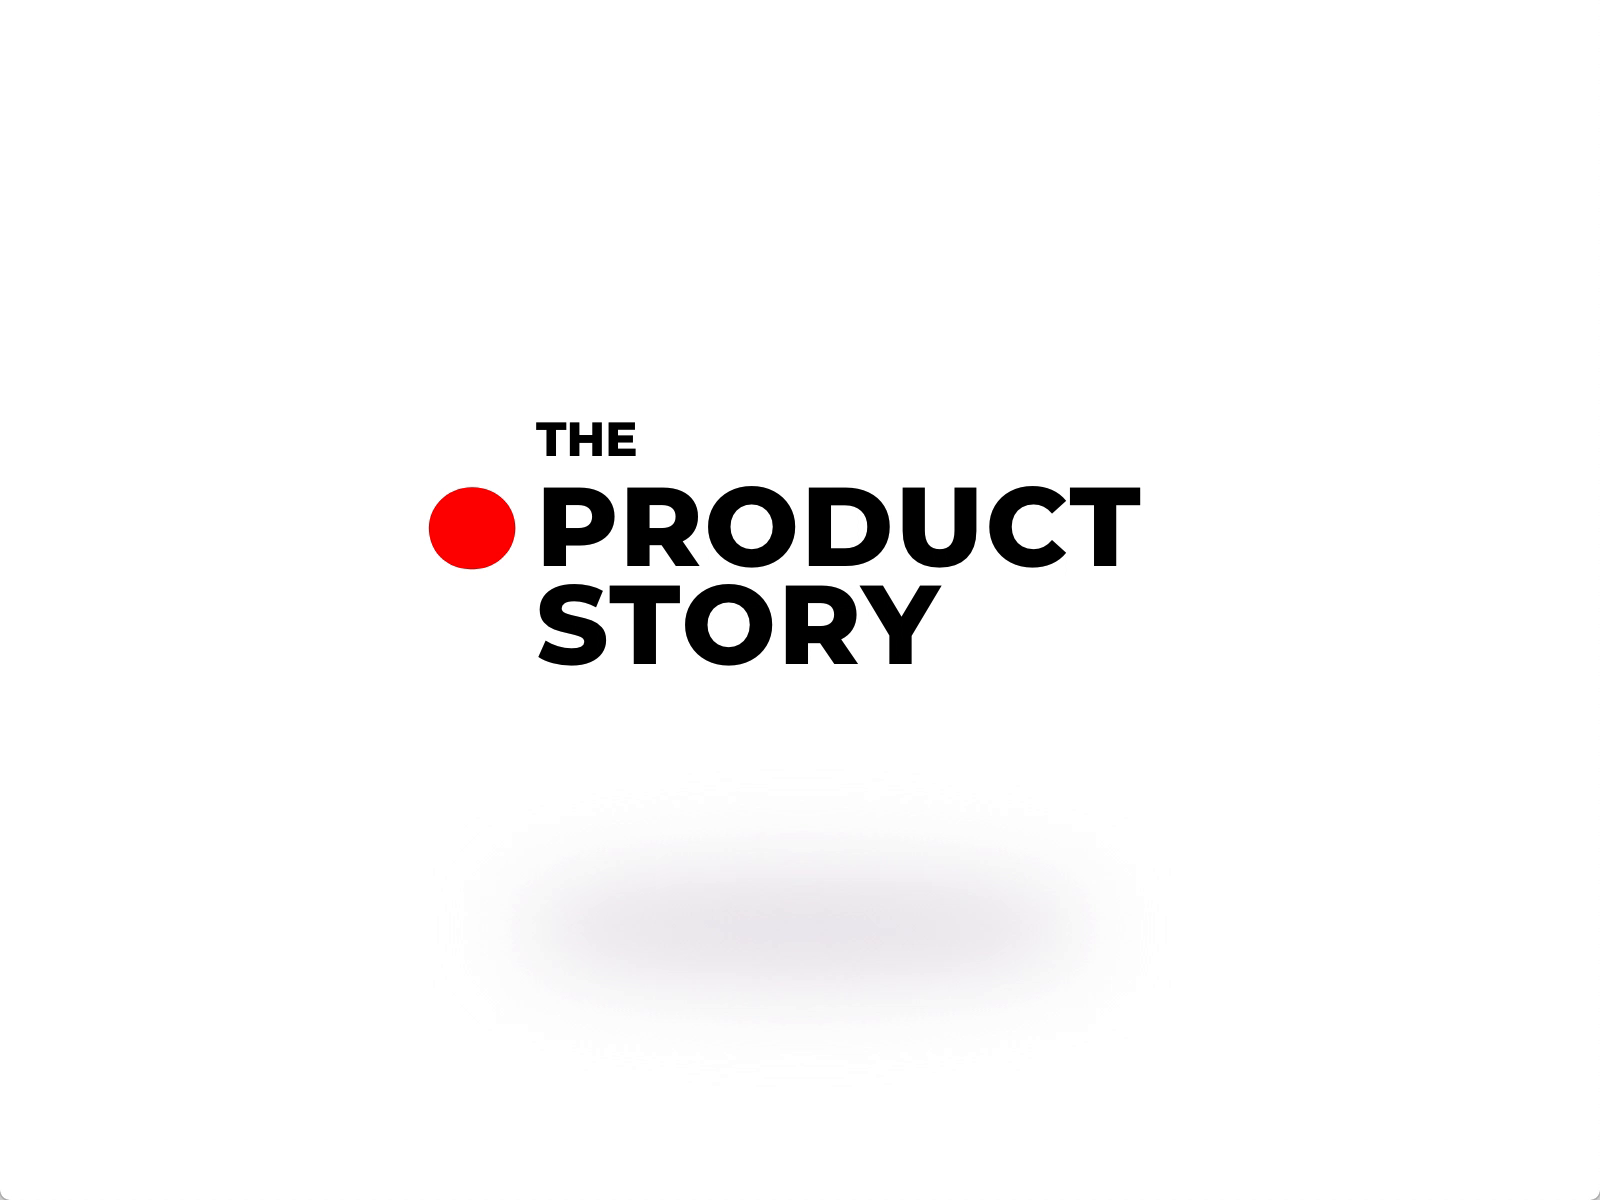 The product story logo 2